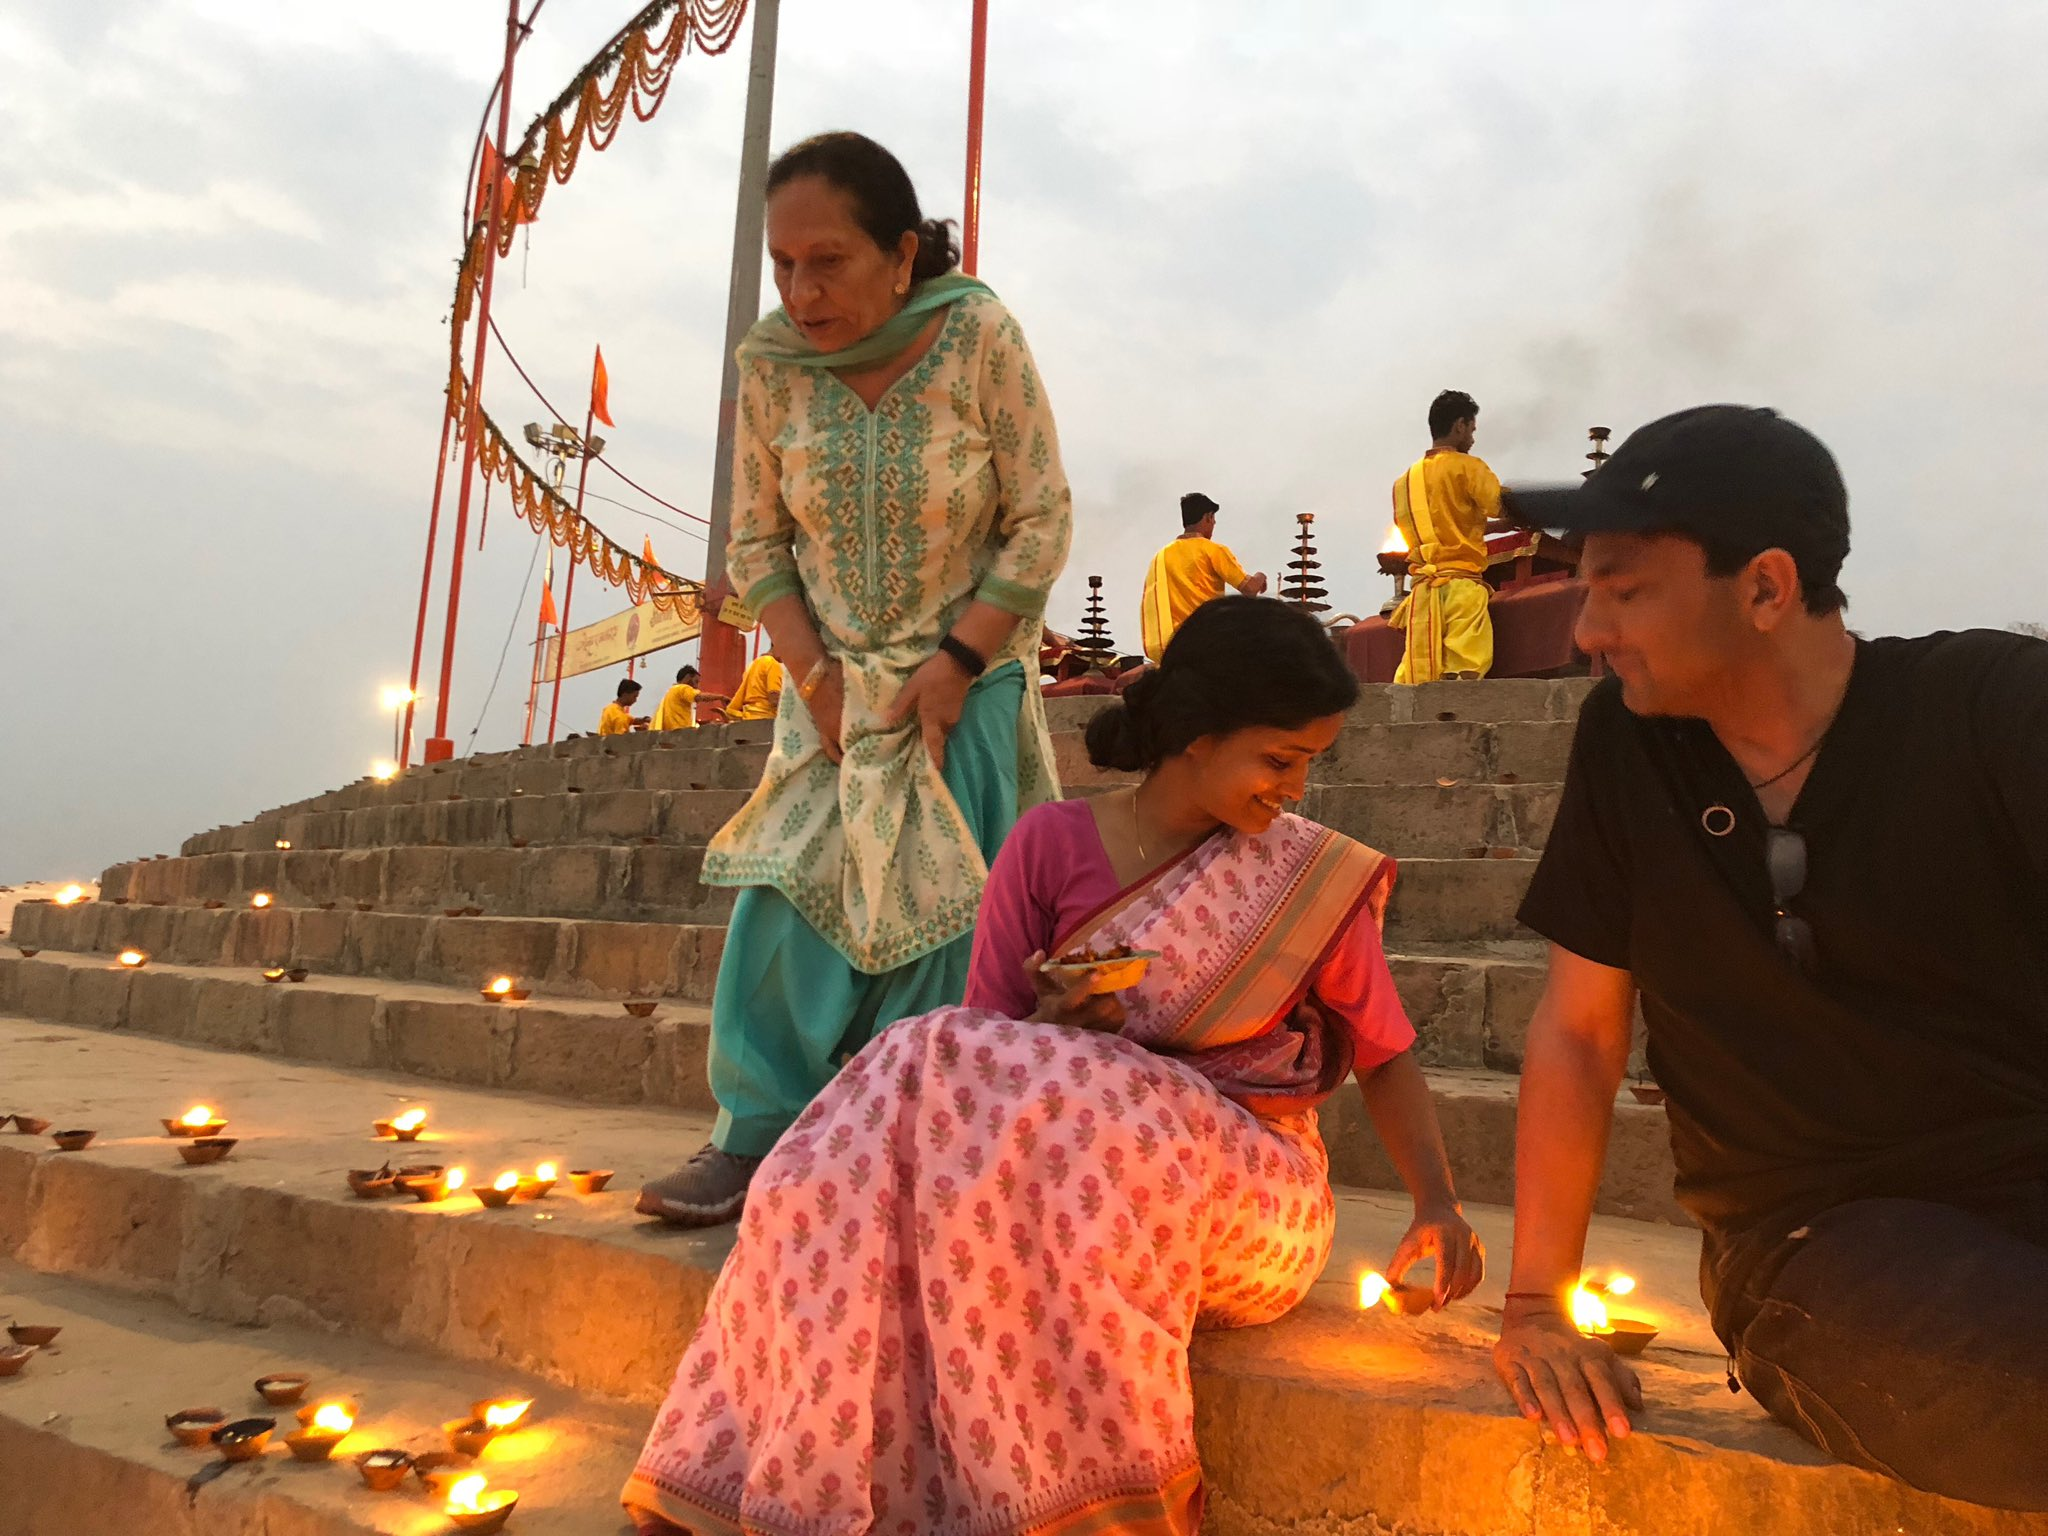 Vikas Khanna: Even the priest said that its very windy, the lamps won't light. Shoot some other day...